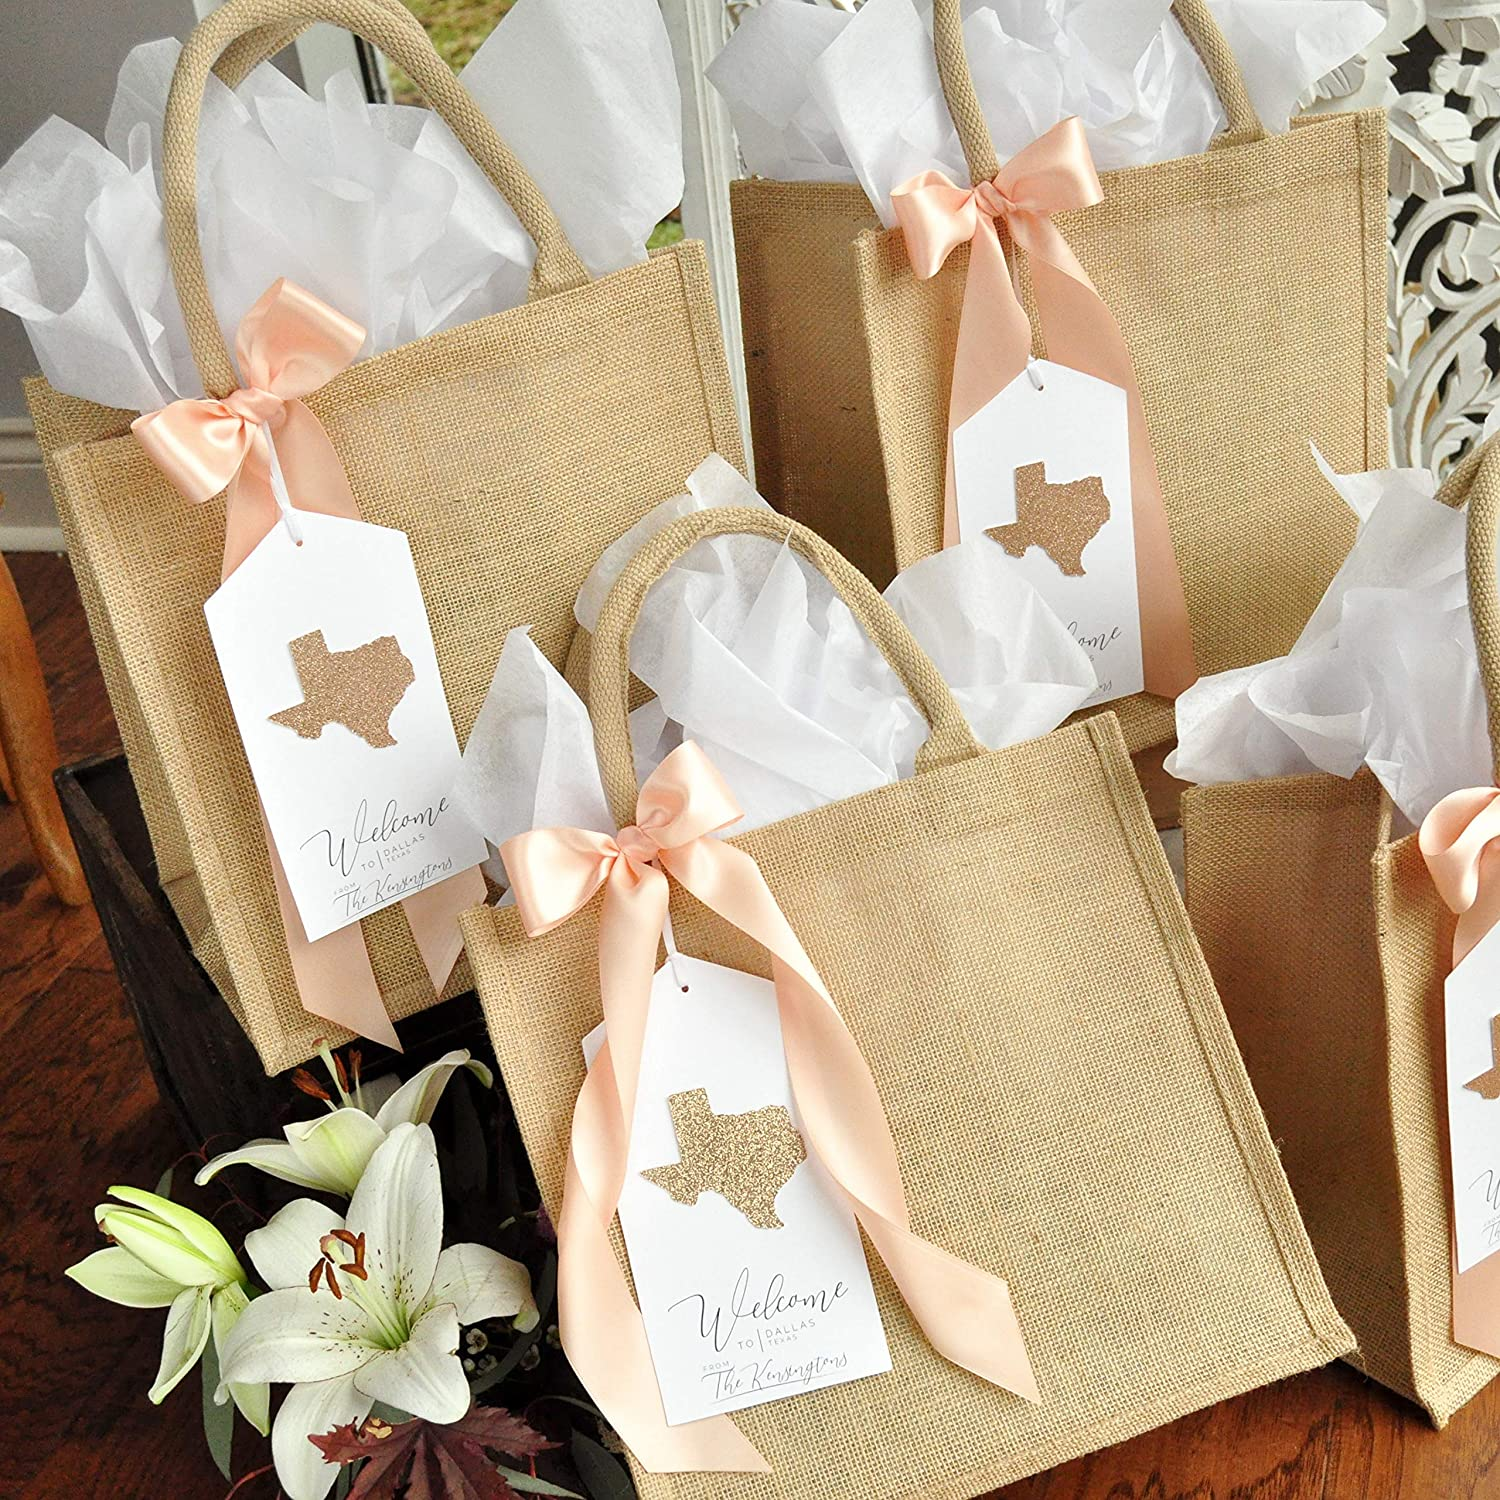 35 Mint Wedding Welcome Bags with satin ribbon /& your names Personalized Beach Wedding gifts and favors bag for guests Elegant Wedding favor